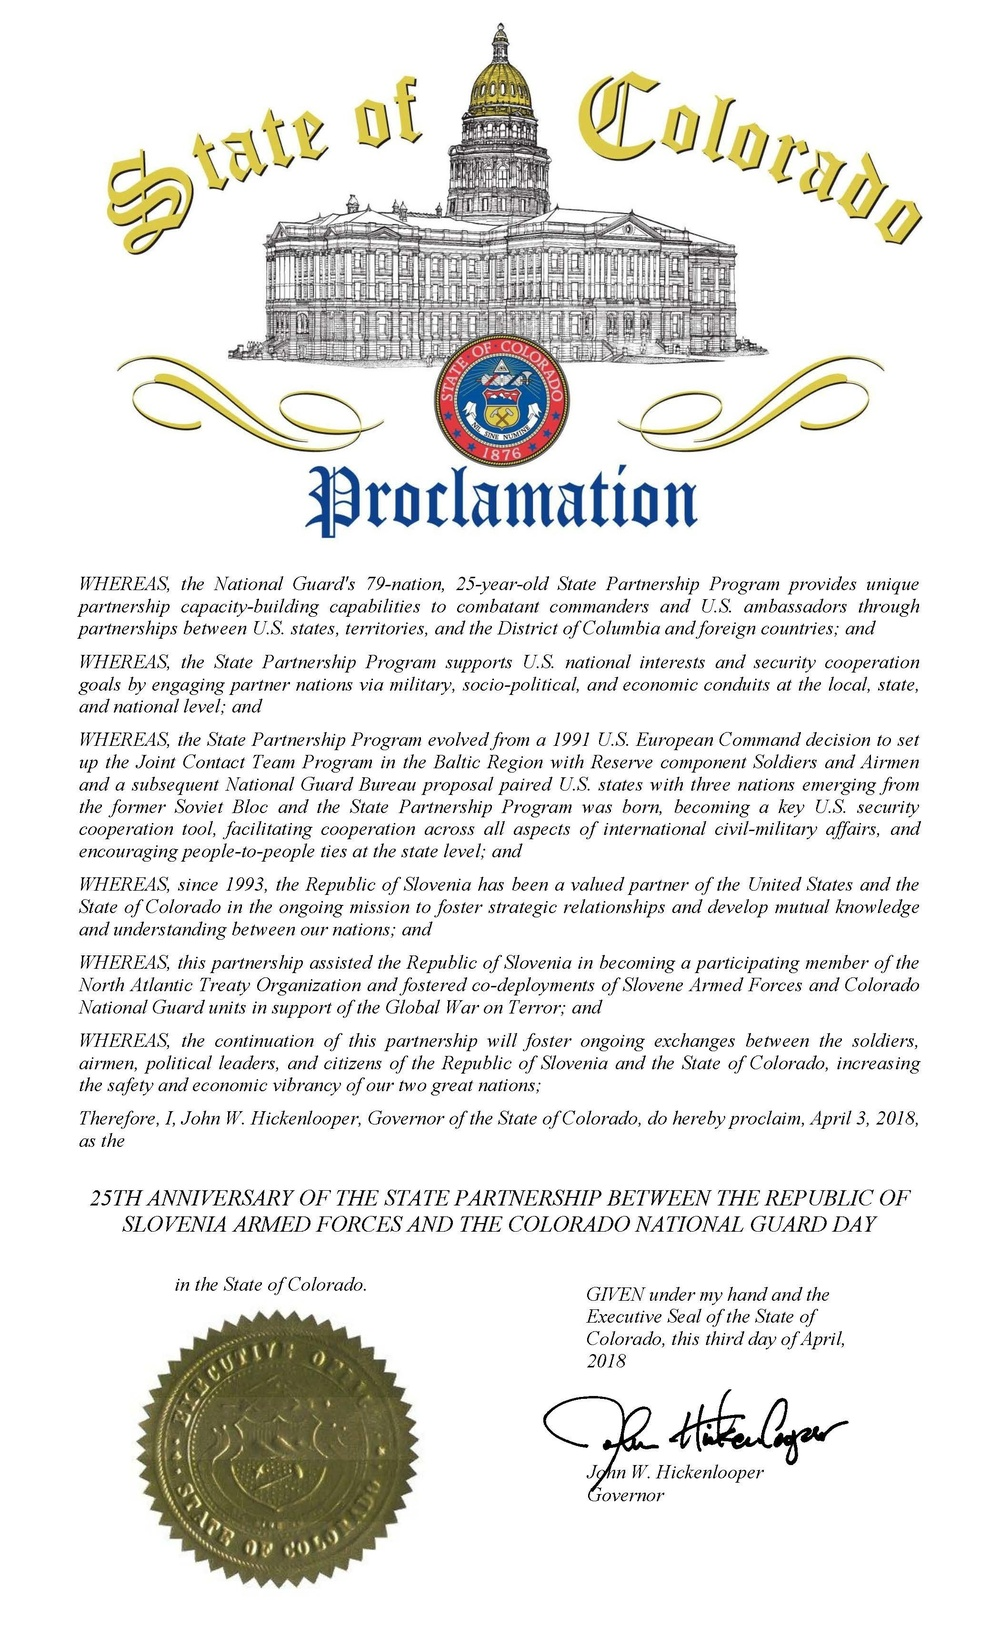 Governor issued proclamation for 25th anniversary of Slovenia-Colorado partnership